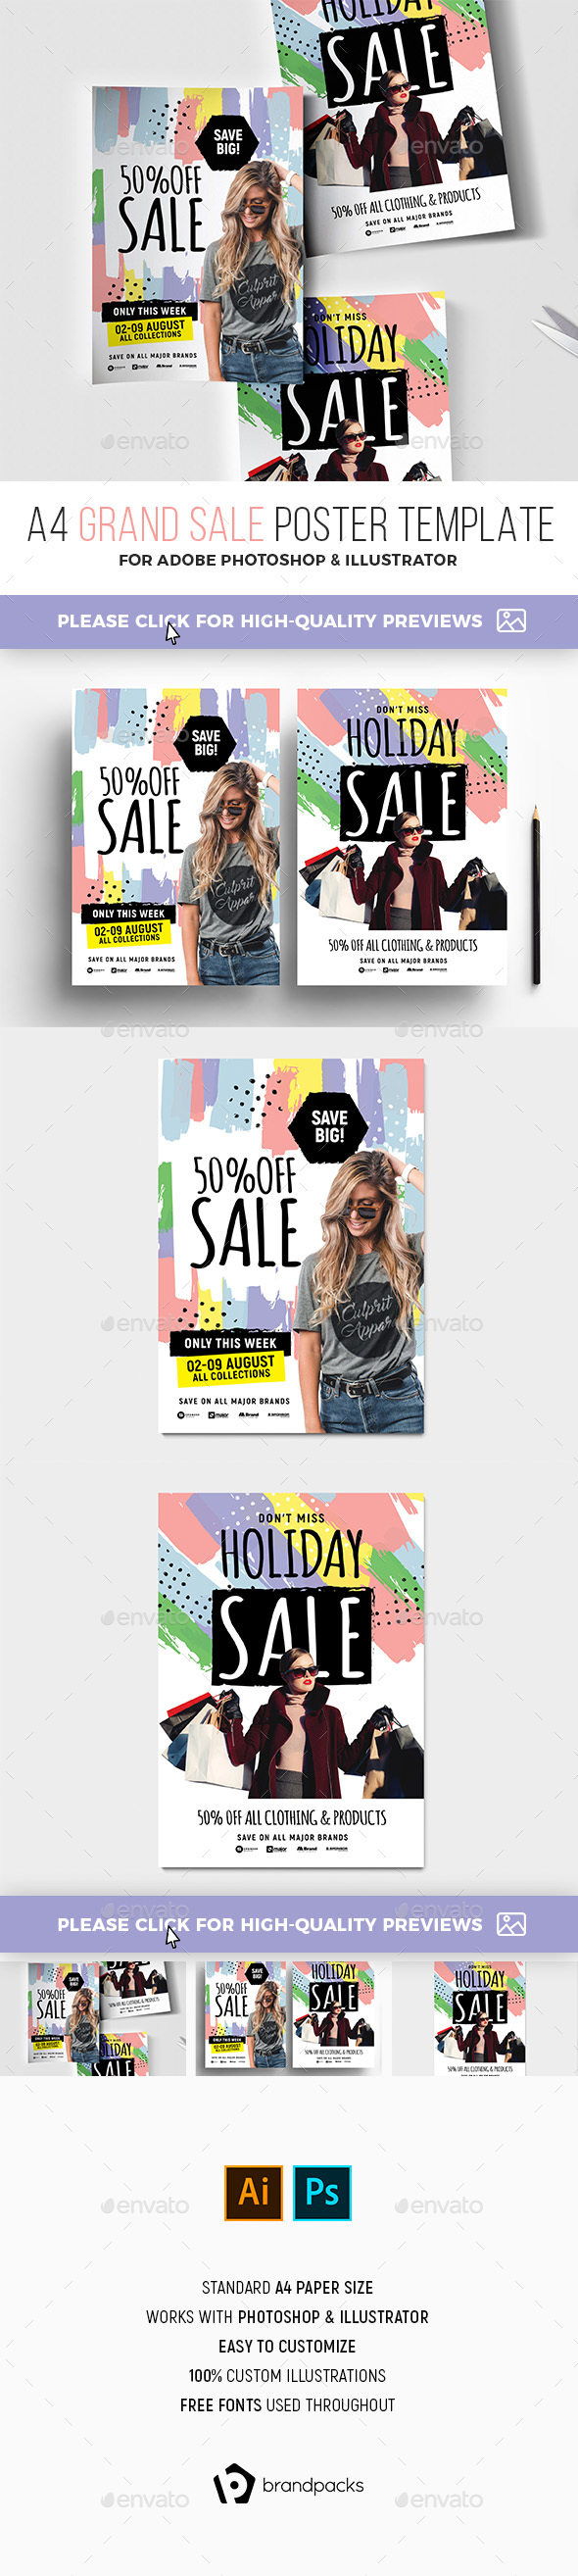 A4 Grand Sale Poster Templates - Commerce Flyers